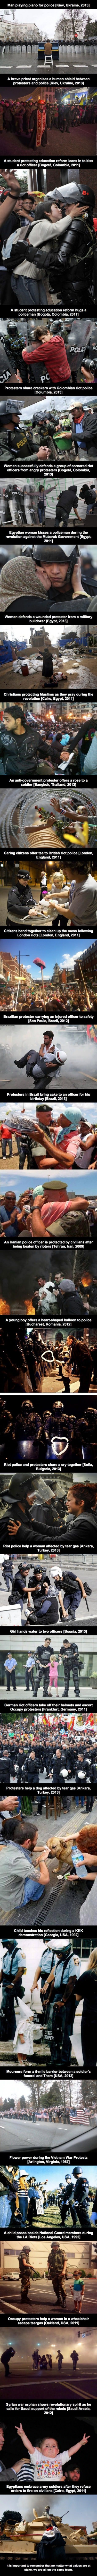 This is so important because I have the feeling that in the news they only show how cruel the police amd protestants can be but thanks to that a lot of people forget that these officers or soldiers as well as the protestans are humans too  Of course it's bad that this violence exists but during this mess a hella lot of good things too